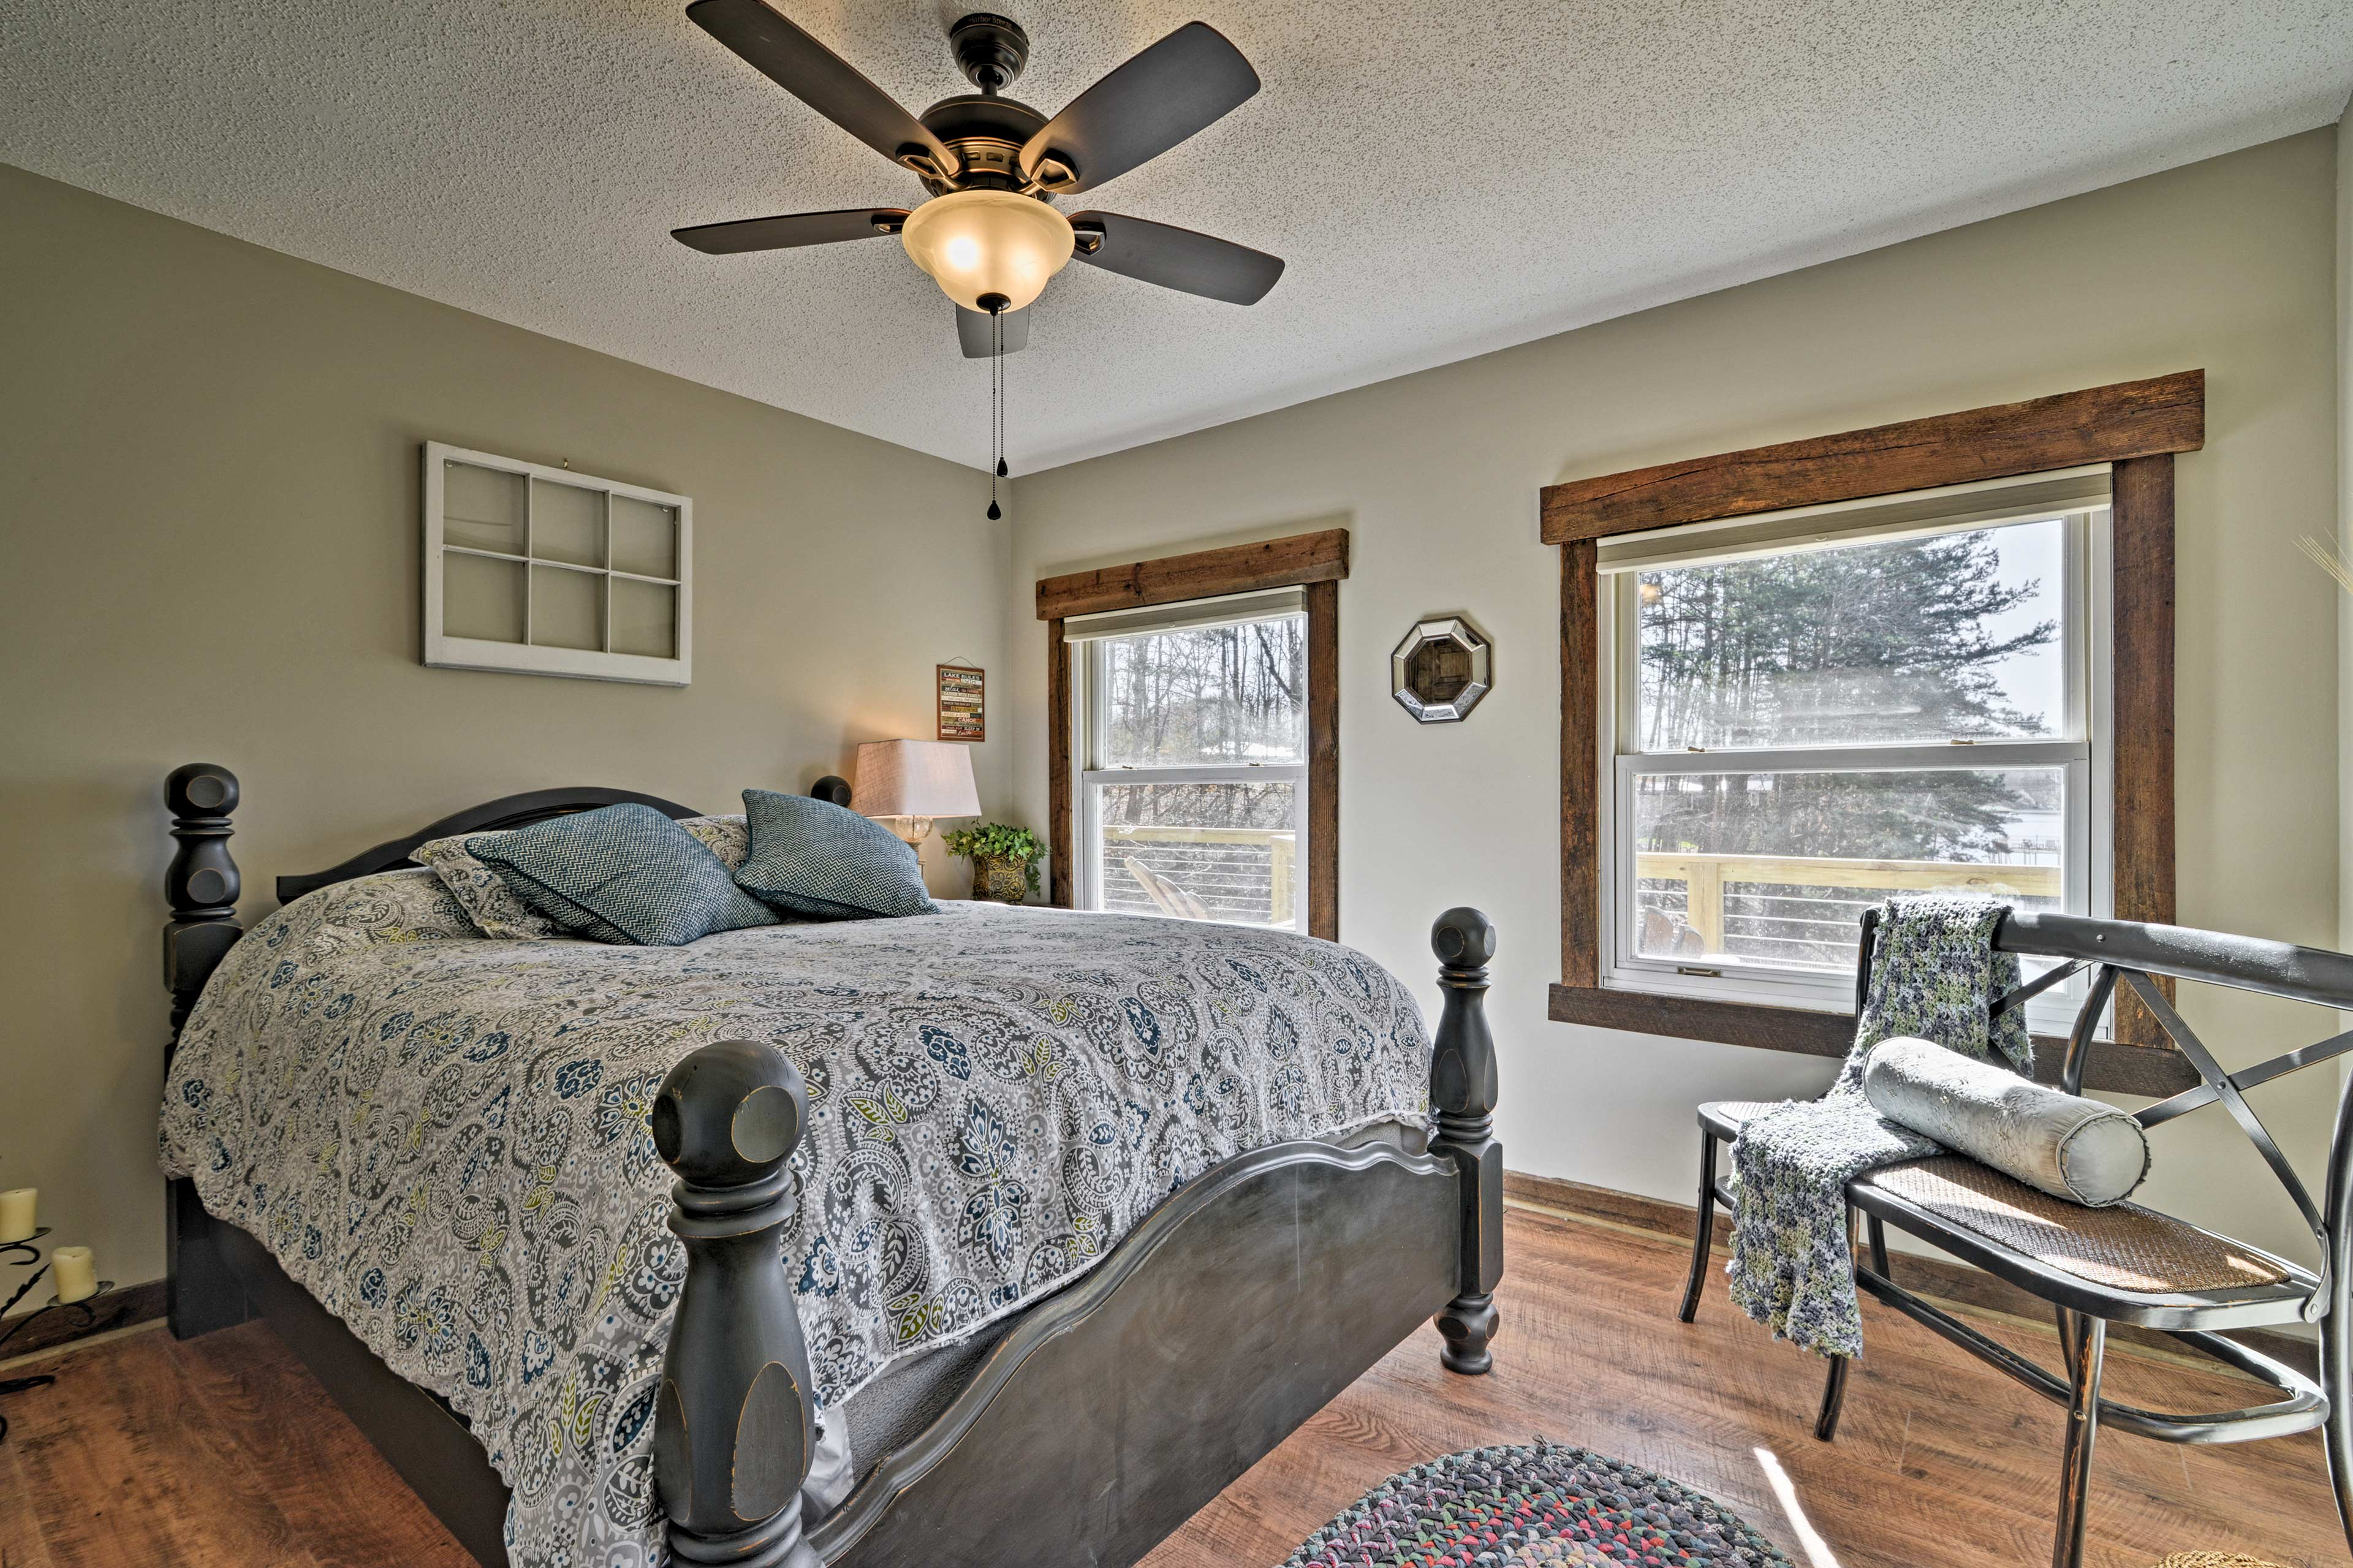 Two bedrooms have queen beds and one has a king bed.